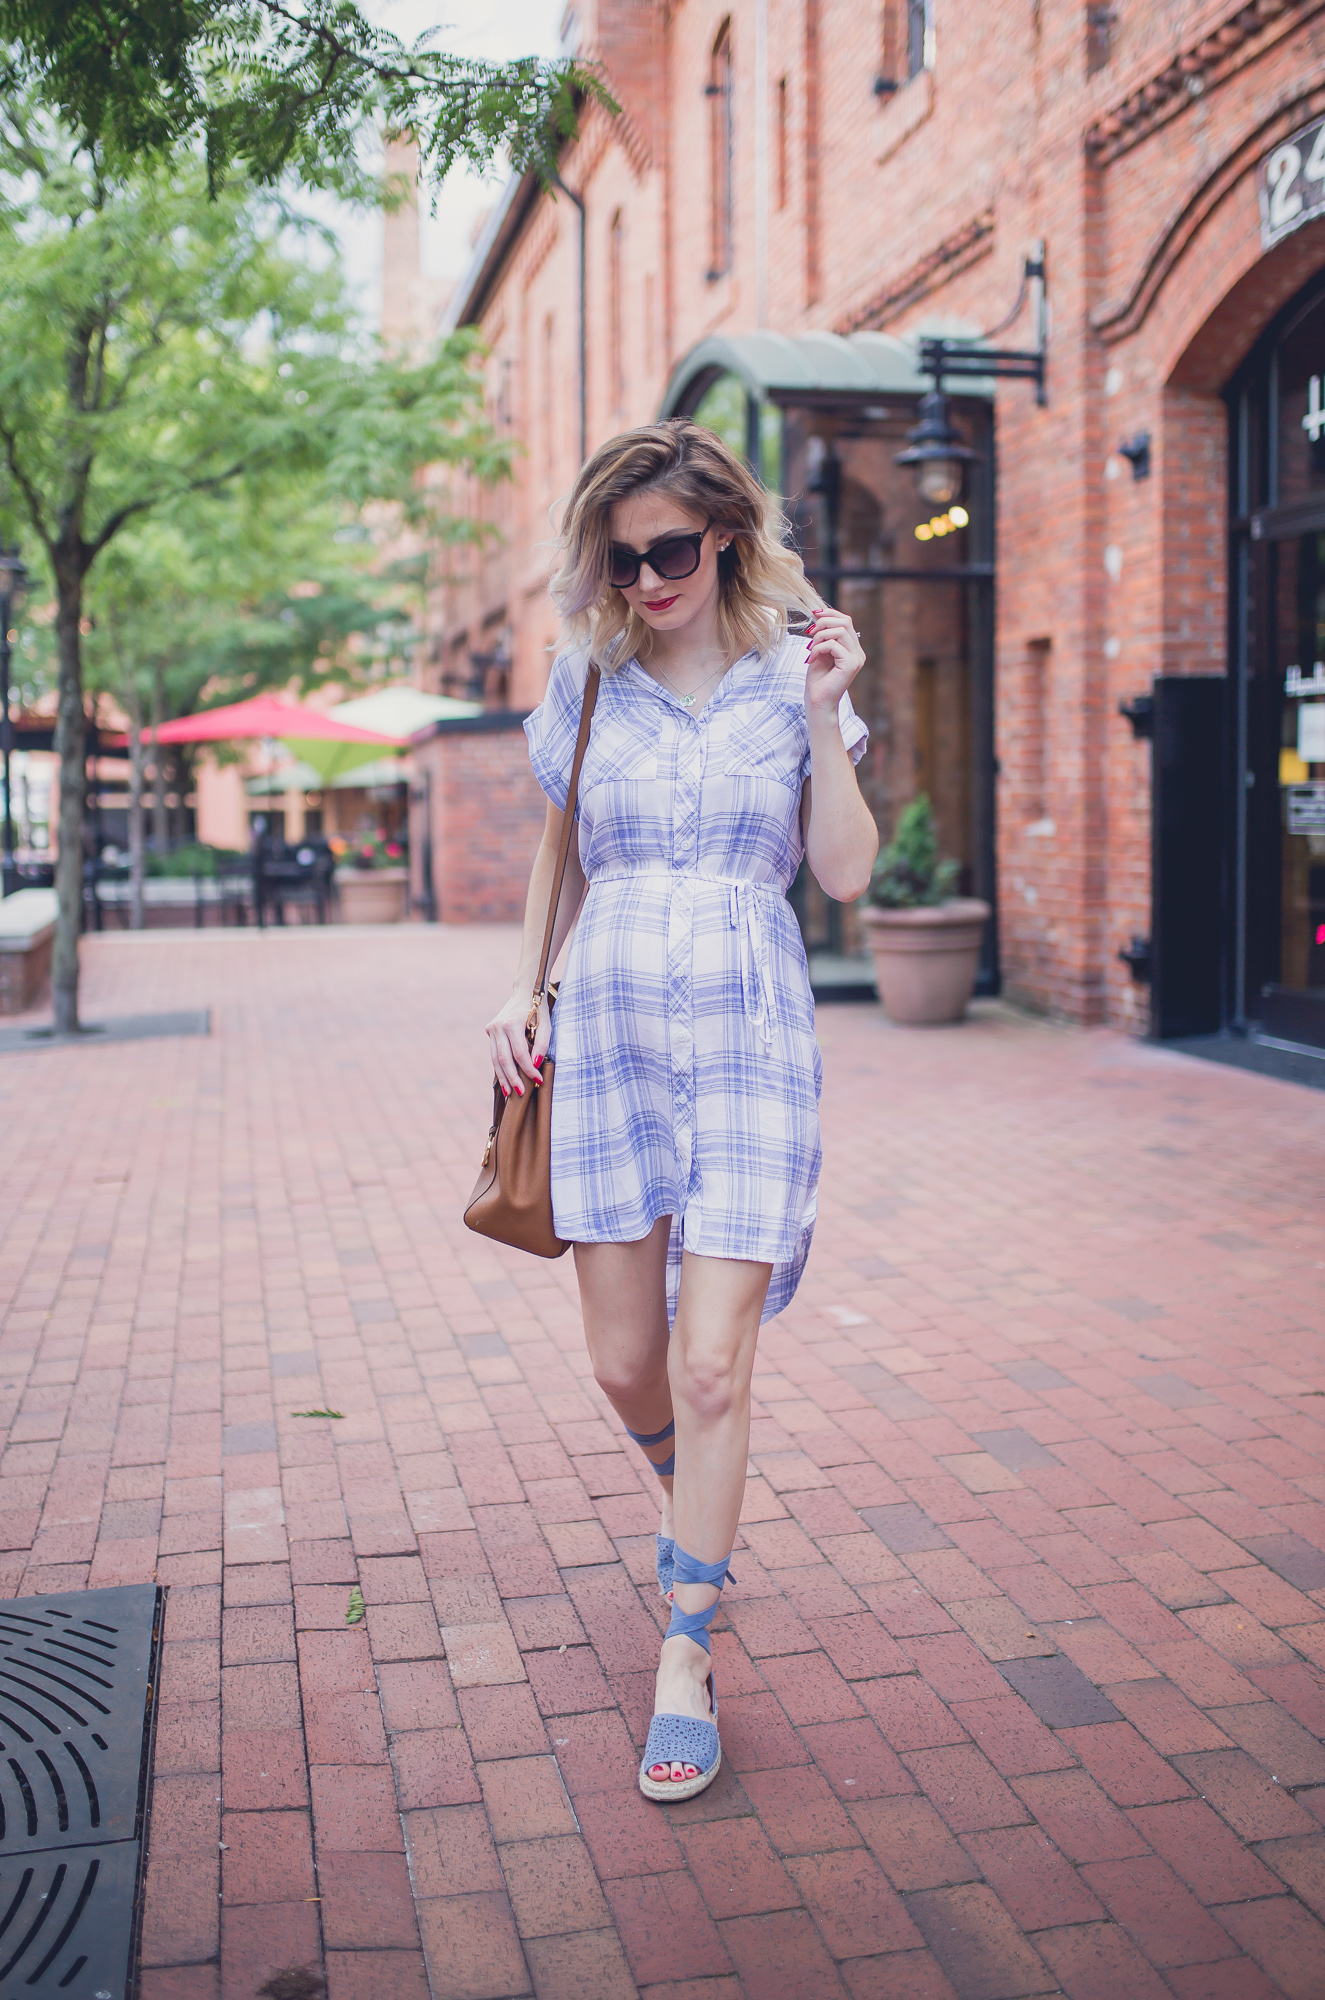 Fashion, lifestyle, and beauty blogger/ vlogger Jessica Linn on Linn Style wearing a summer blue and white plaid button up t-shirt dress from Ross, lace up blue sandals from Report footwear, and jewelry from local Cary North Carolina business CY Design Studio and lipstick from locally made all natural organic lipstick from SumerReign Cosmetics by Ashley Summerville in Durham NC.